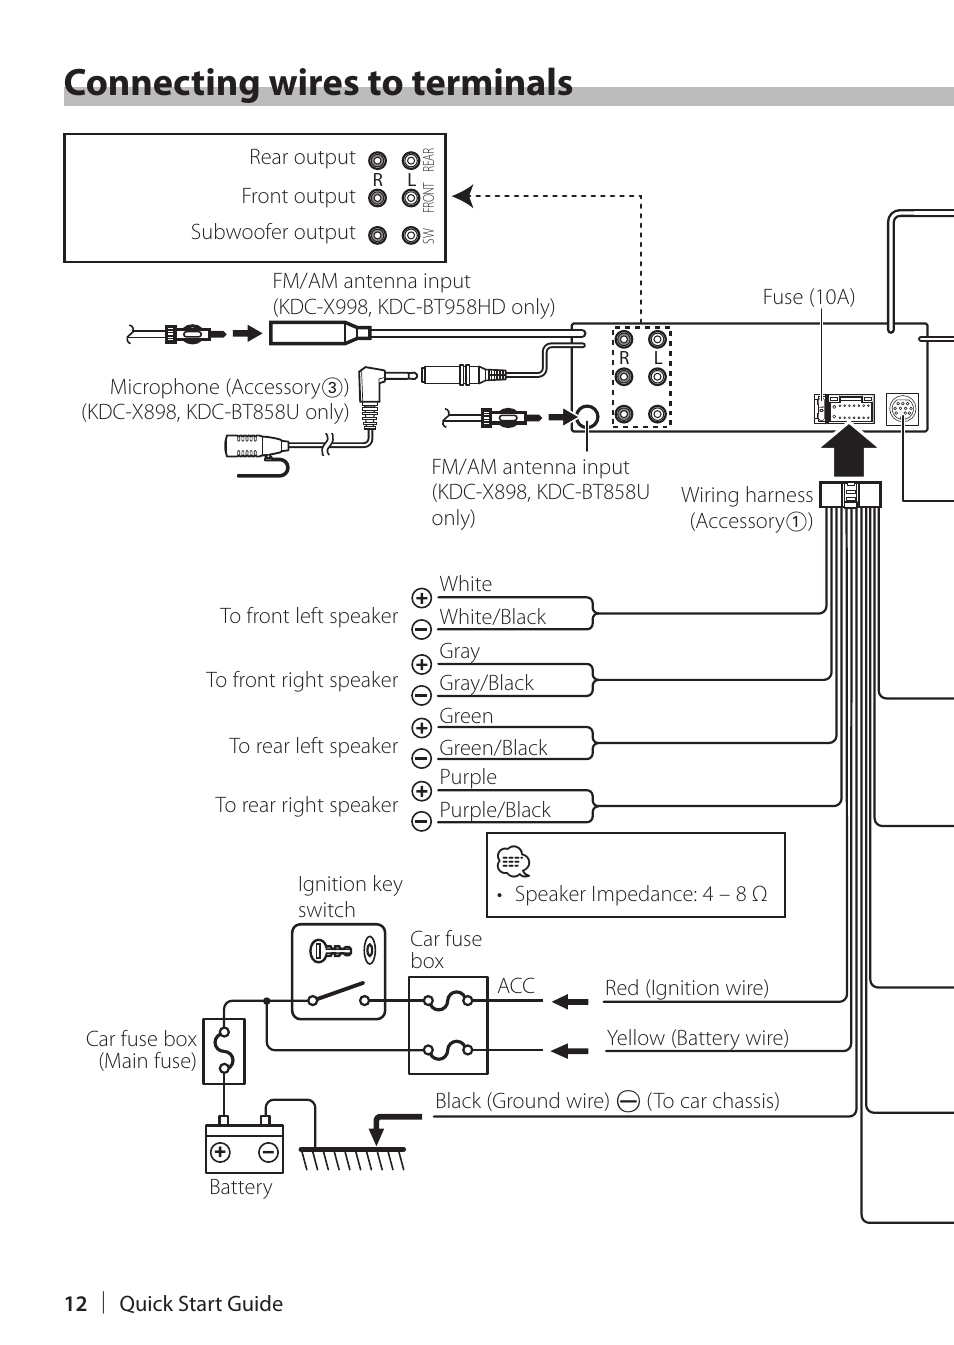 Connecting Wires To Terminals